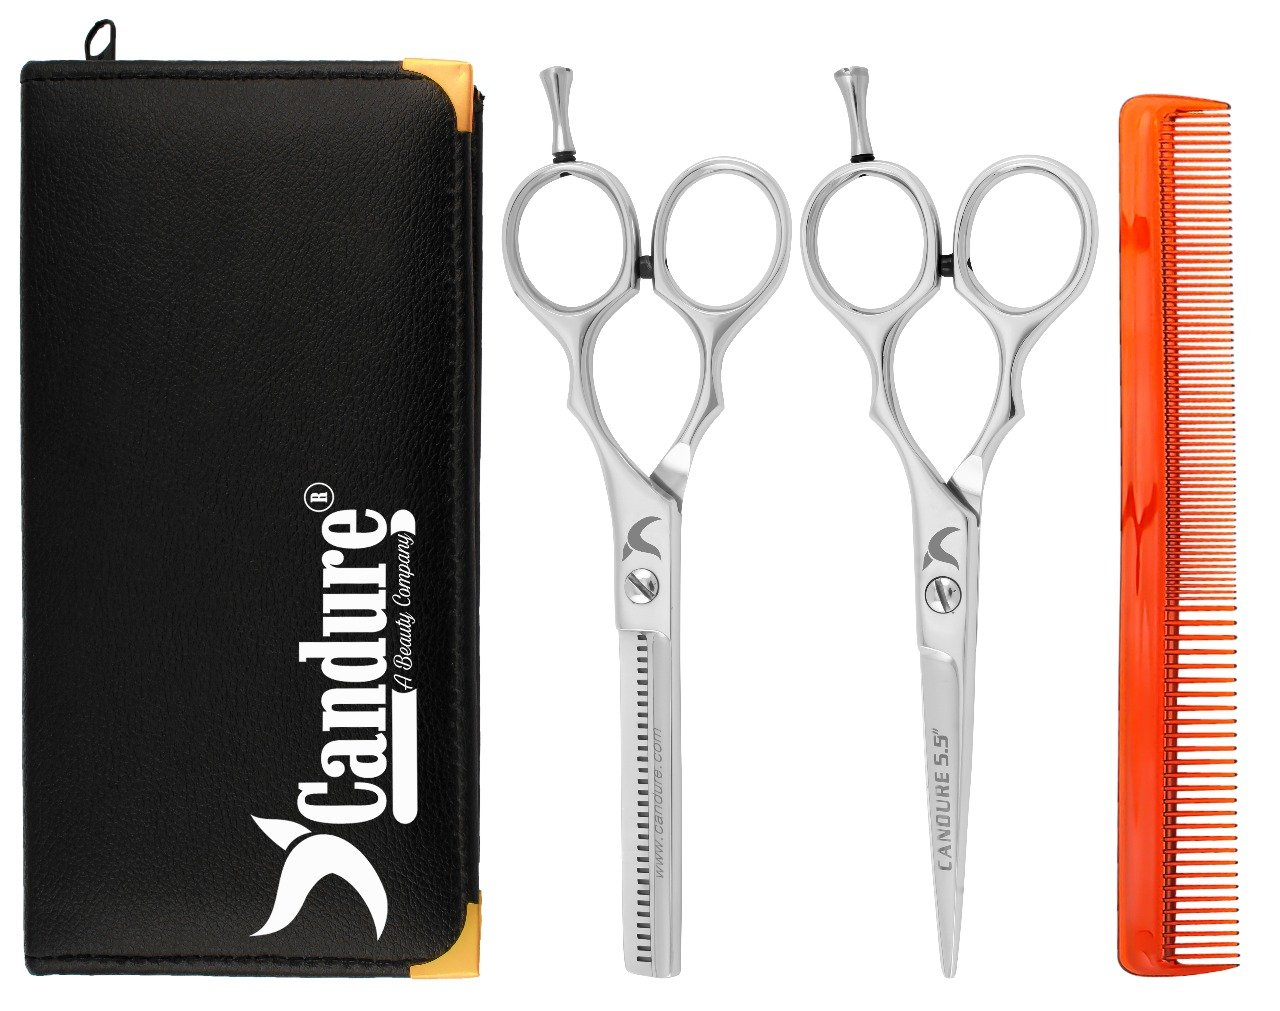 Amazon.com : Hairdressing Scissors Shears Kit - Hair Cutting ...